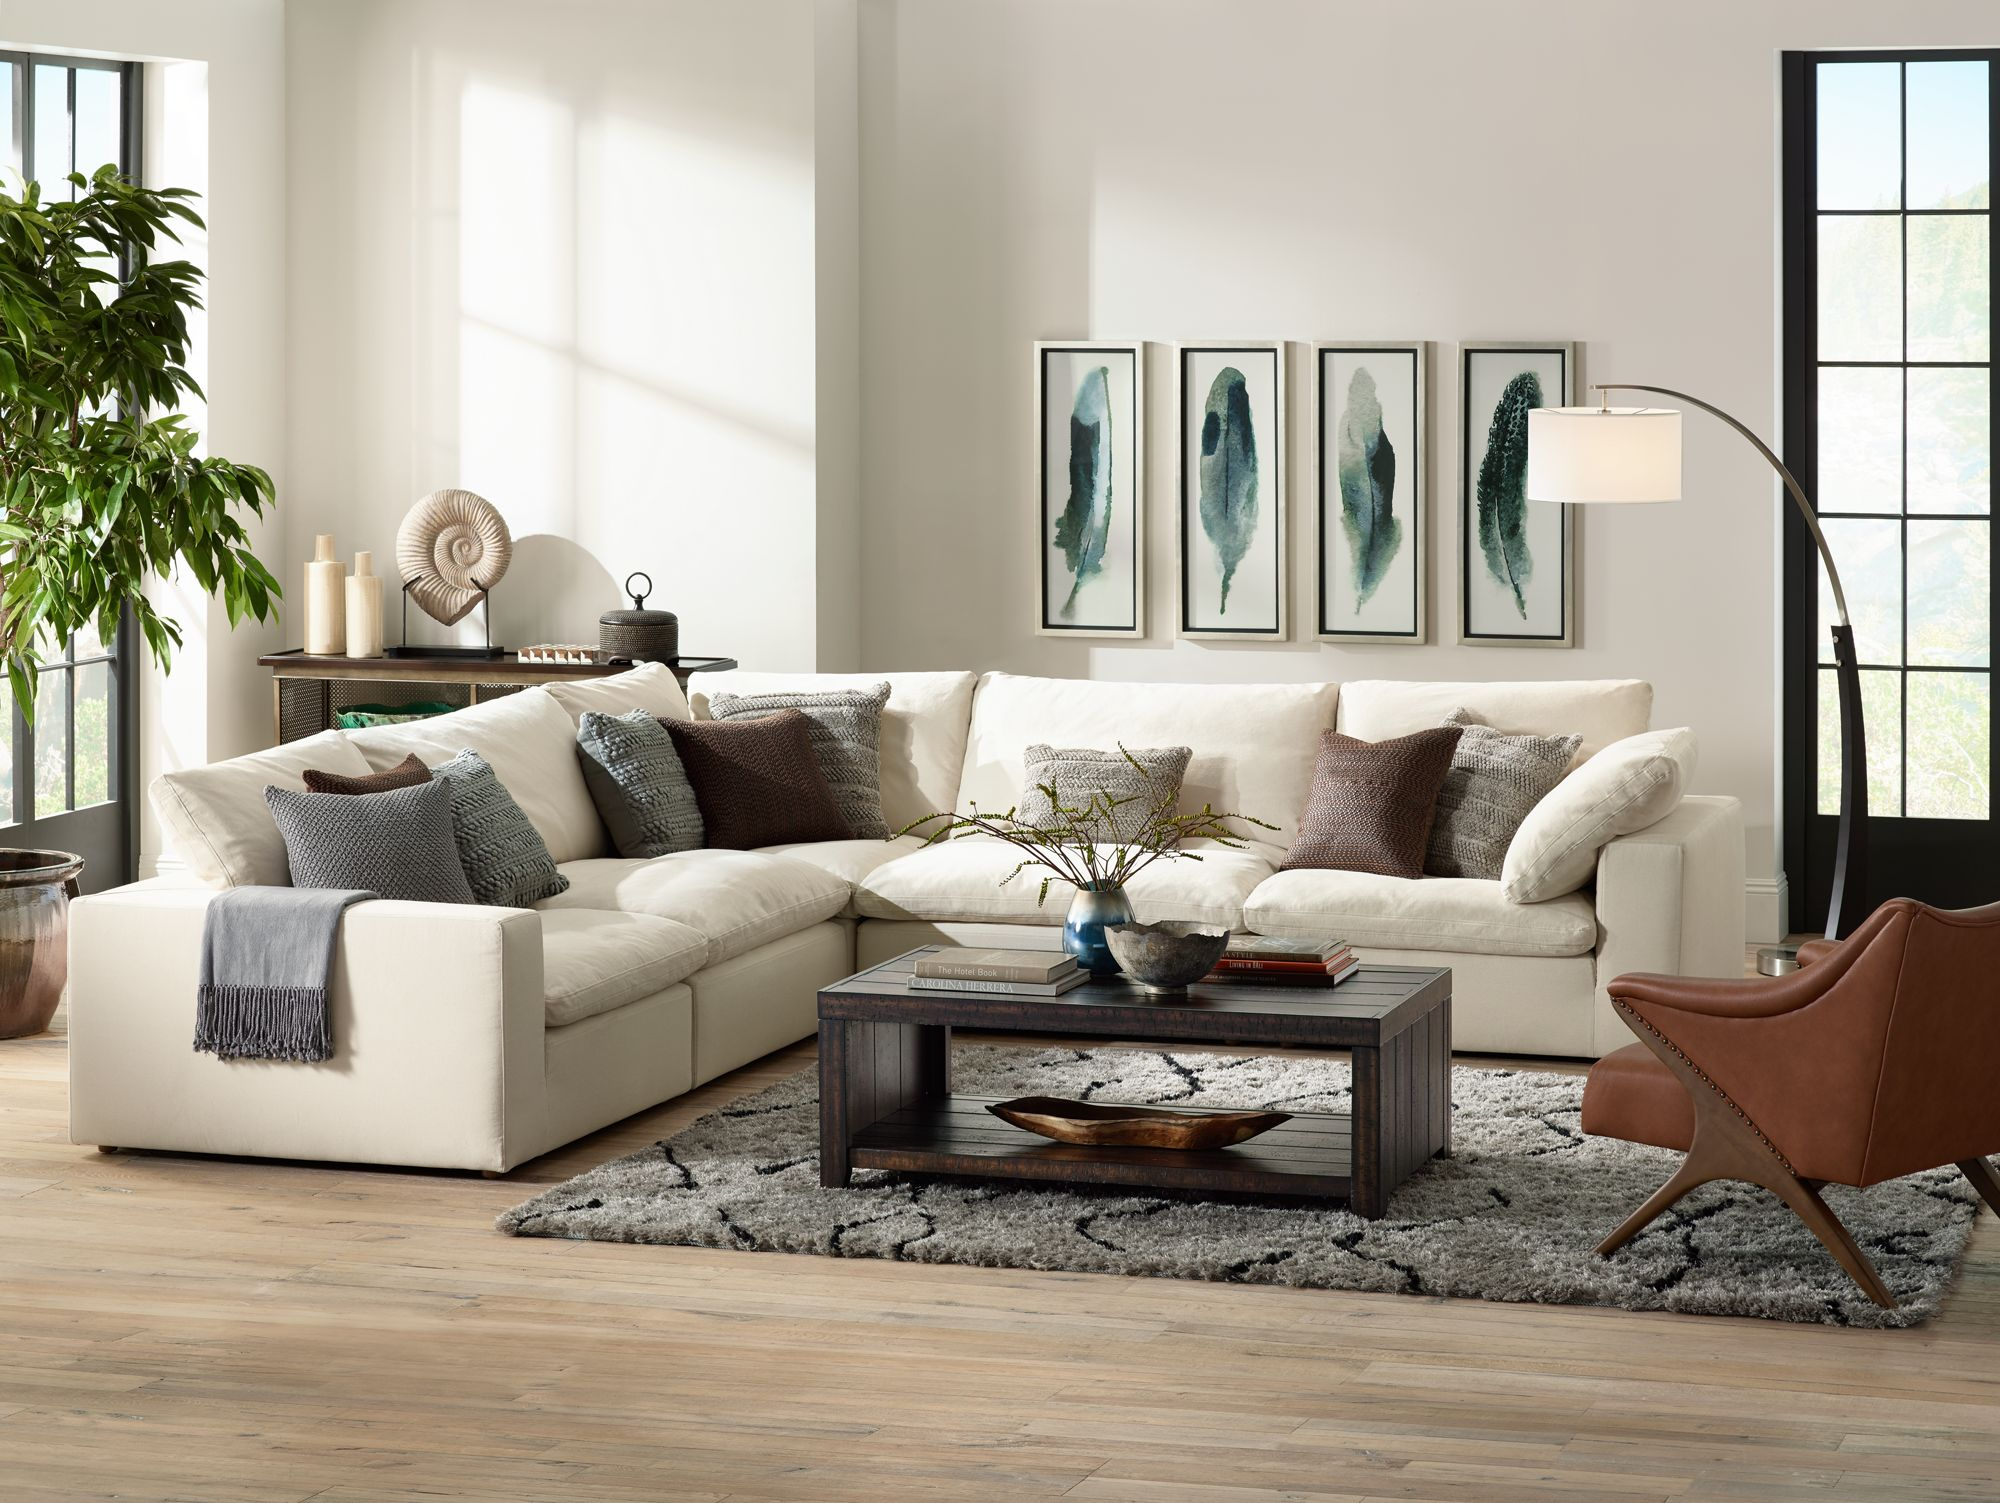 Comfy sectional seating paired with a large arc floor l&. : floor lamps behind sectional sofas - Sectionals, Sofas & Couches